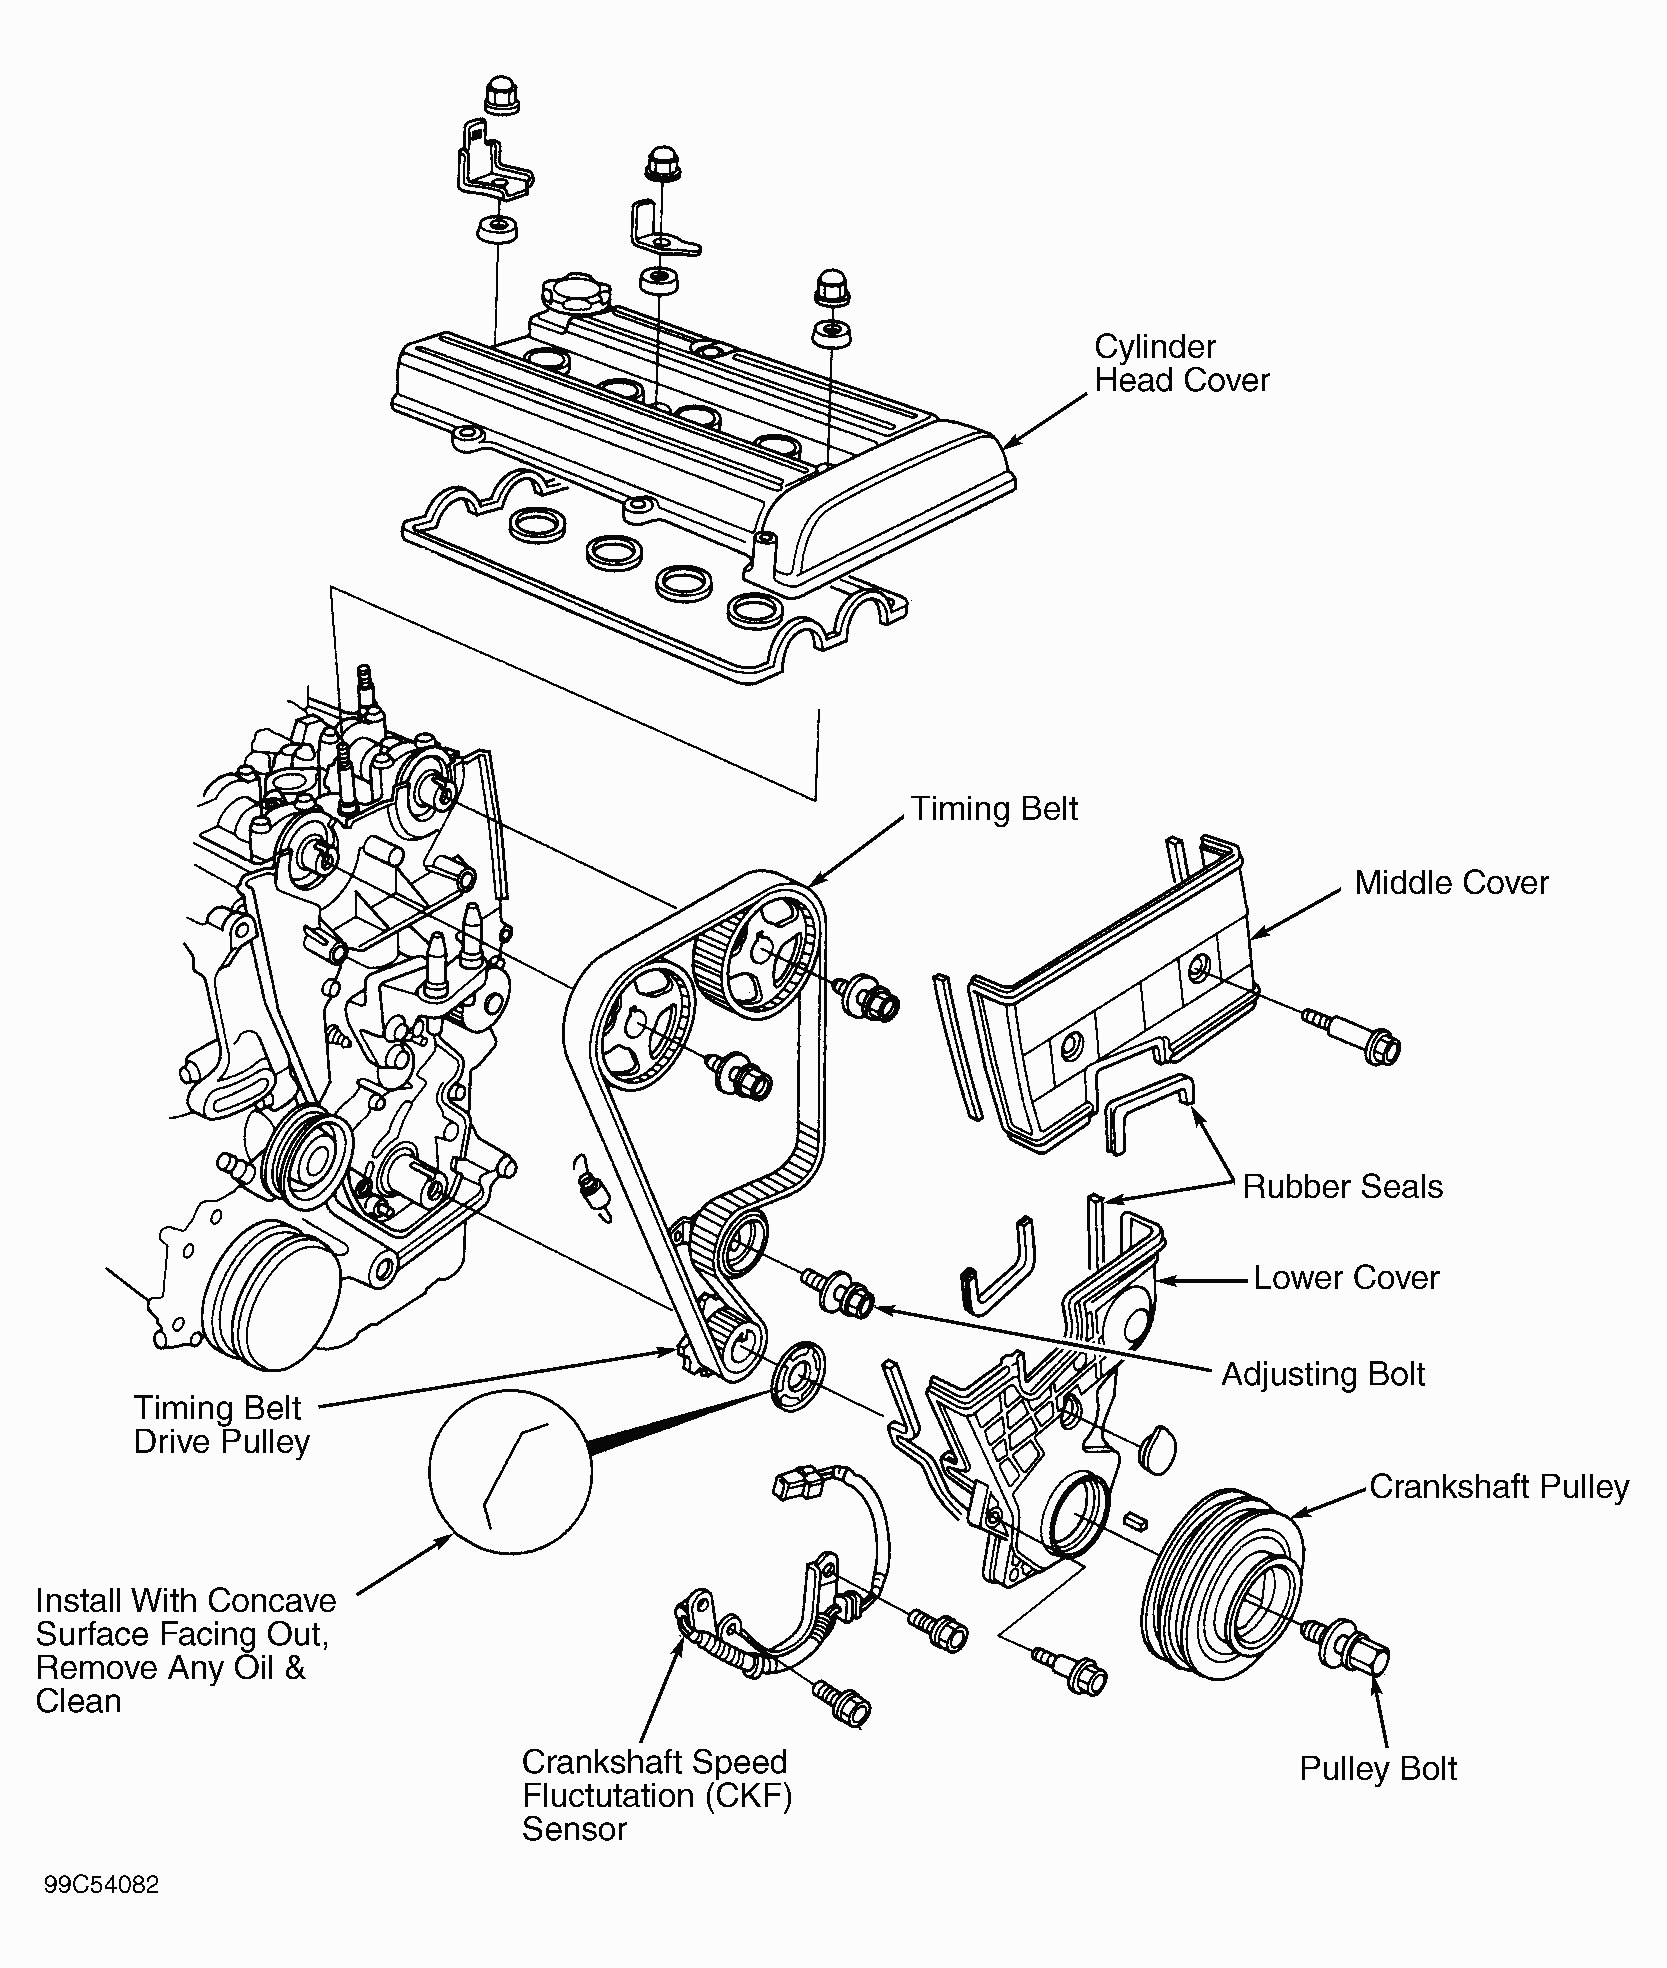 Honda Crv Engine Diagram Honda B Engine Diagram Honda Wiring Diagrams Instructions Of Honda Crv Engine Diagram